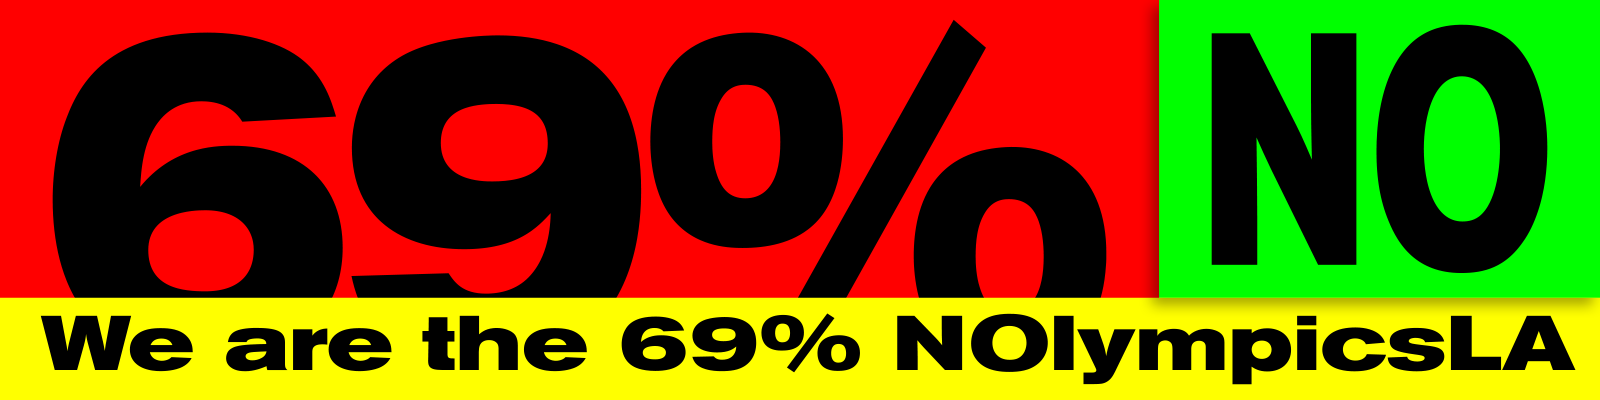 69-no-email-banner.png